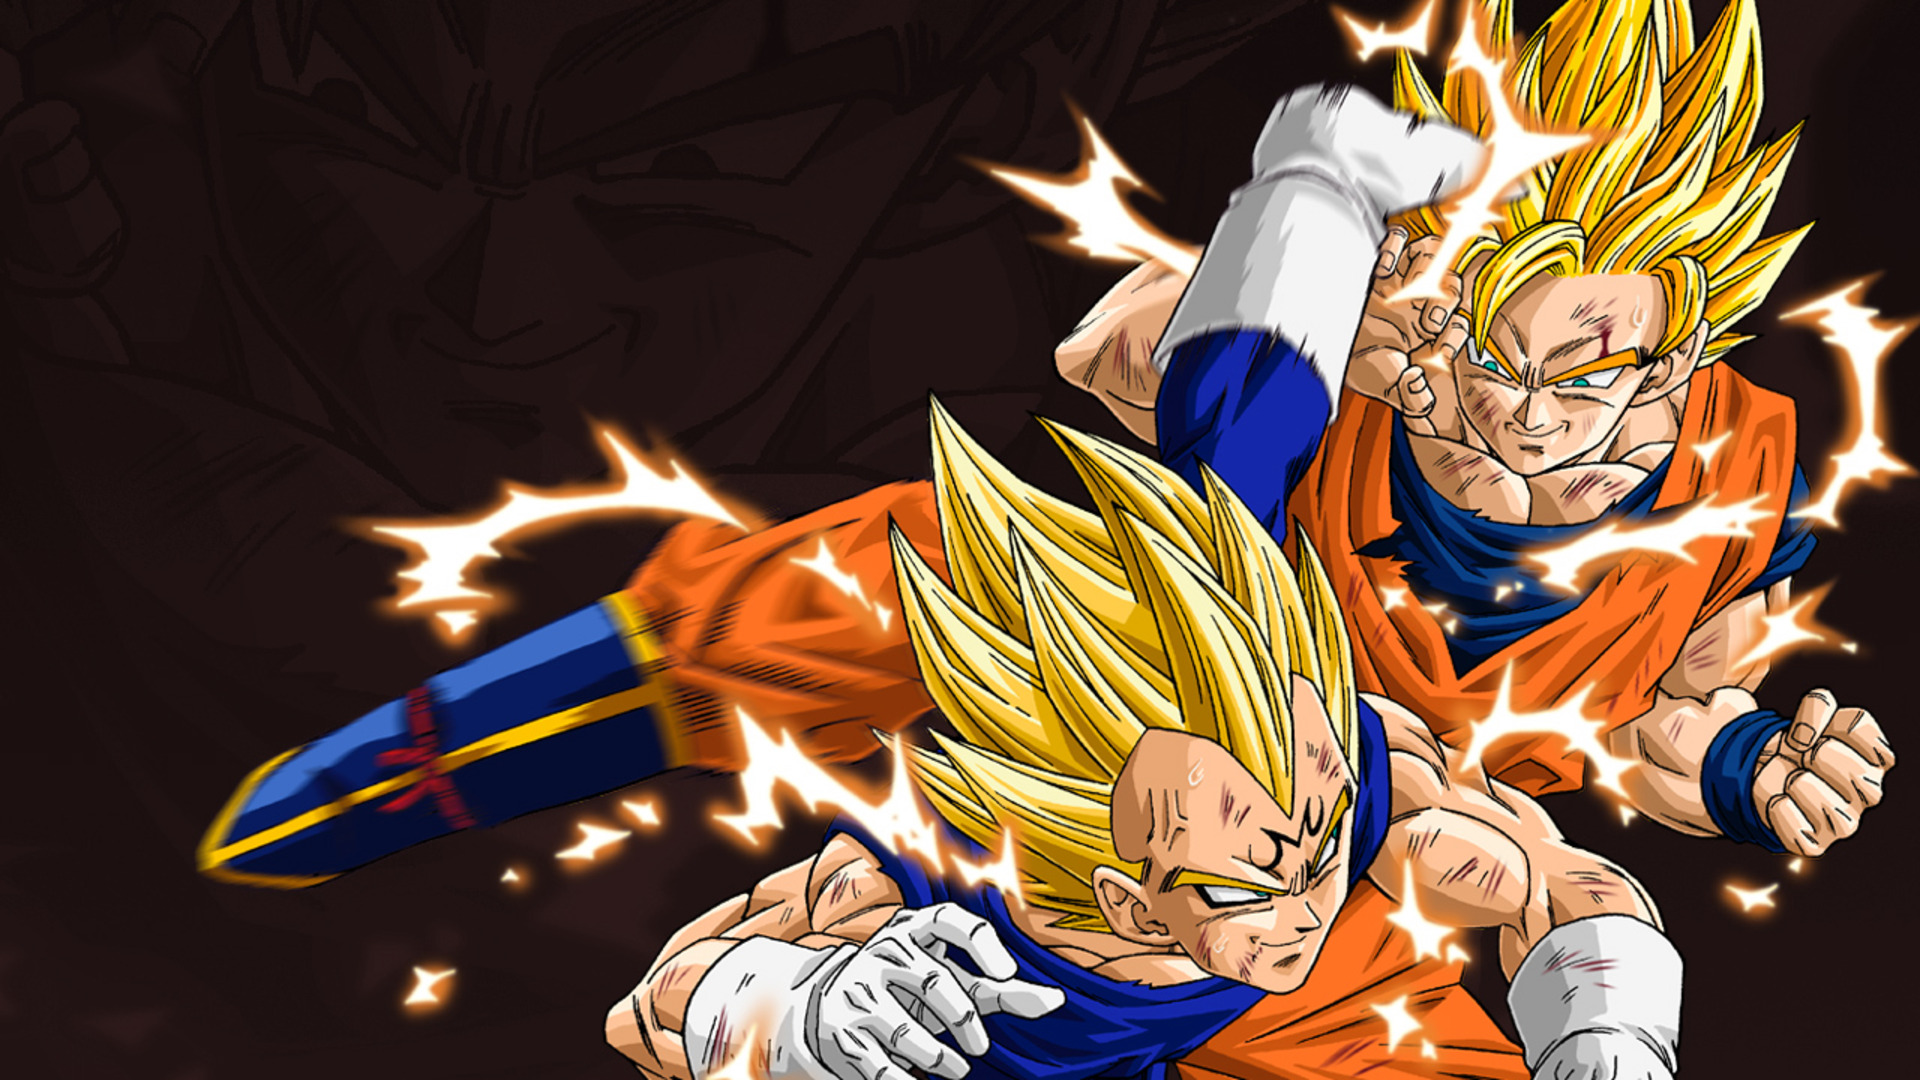 goku vegeta wallpaper dragon ball z wallpaper